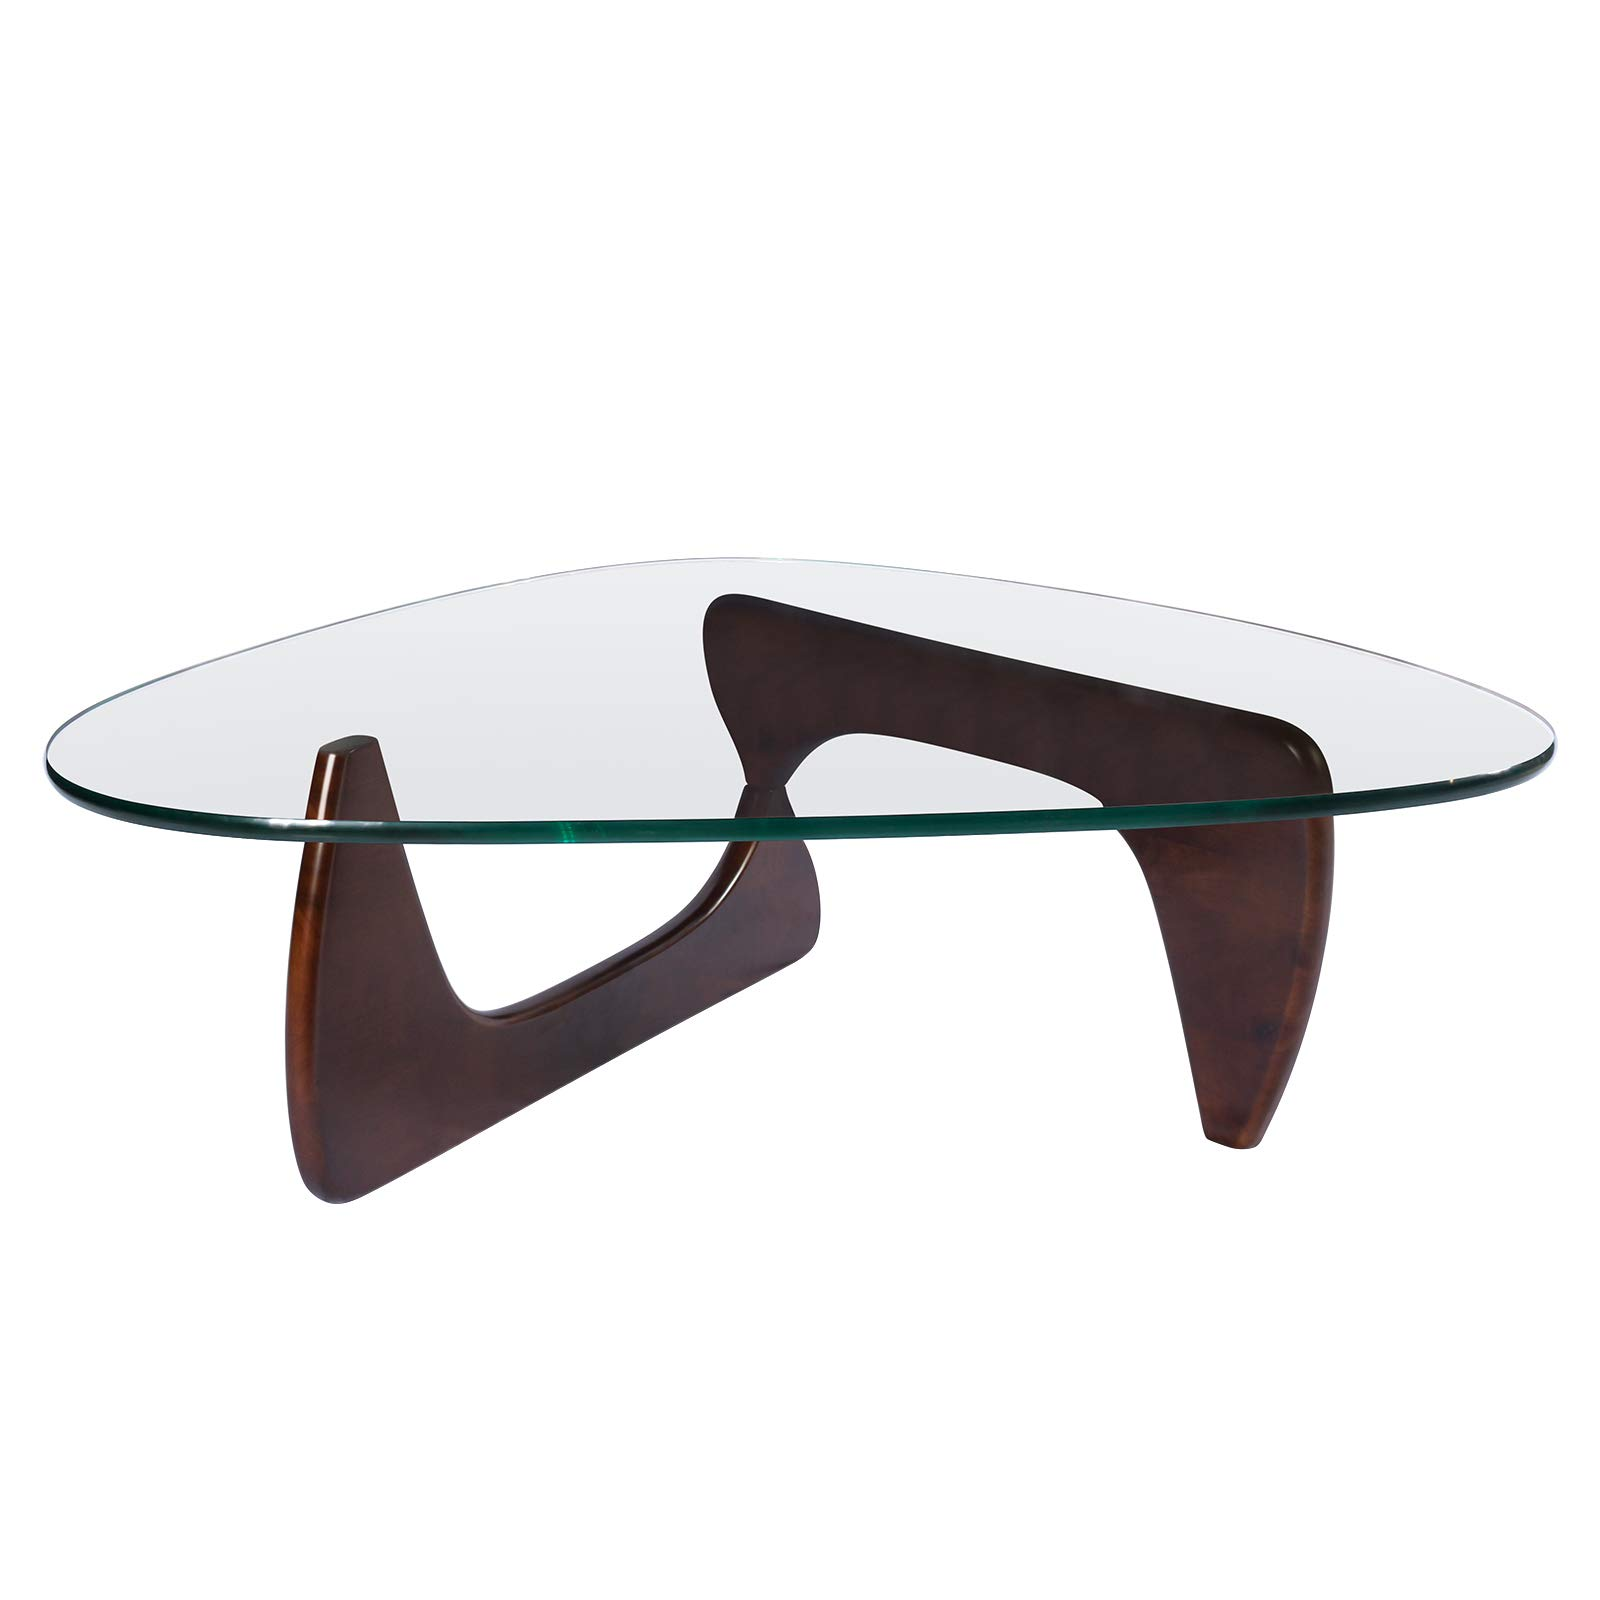 Rimdoc Triangle Glass Coffee Table,Mid Century Noguchi Coffee Table,Vintage Wood Glass Table,Solid Walnut Wood Base and Clear Glass Top Modern Coffee Table for Living Room,Patio,Study(Dark Walnut) by Rimdoc